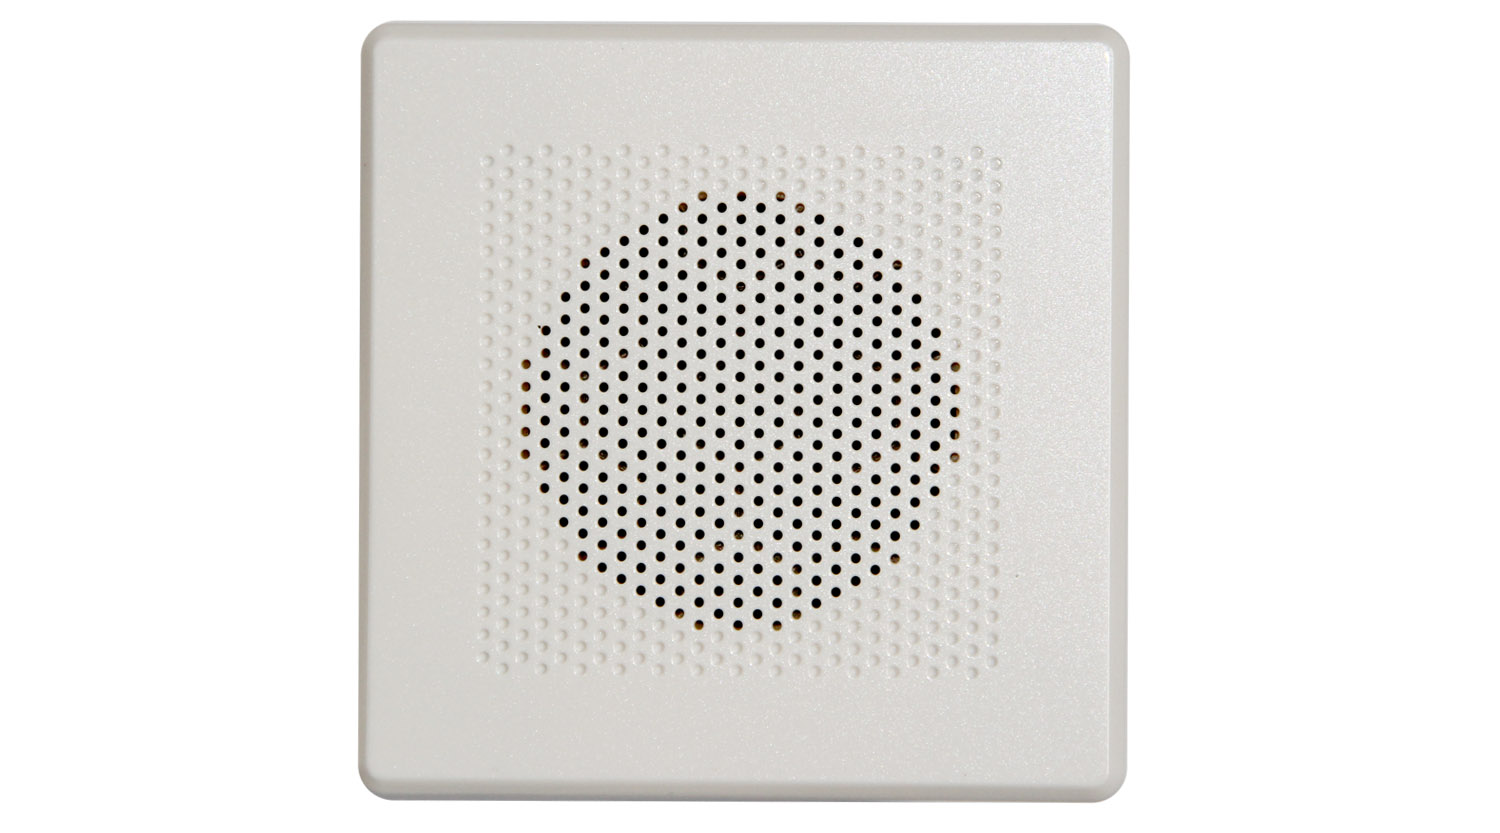 Home Audio Loudspeaker In Ceiling Speaker 4ohm Stereo Ceiling Speaker 2 Inches Bathroom